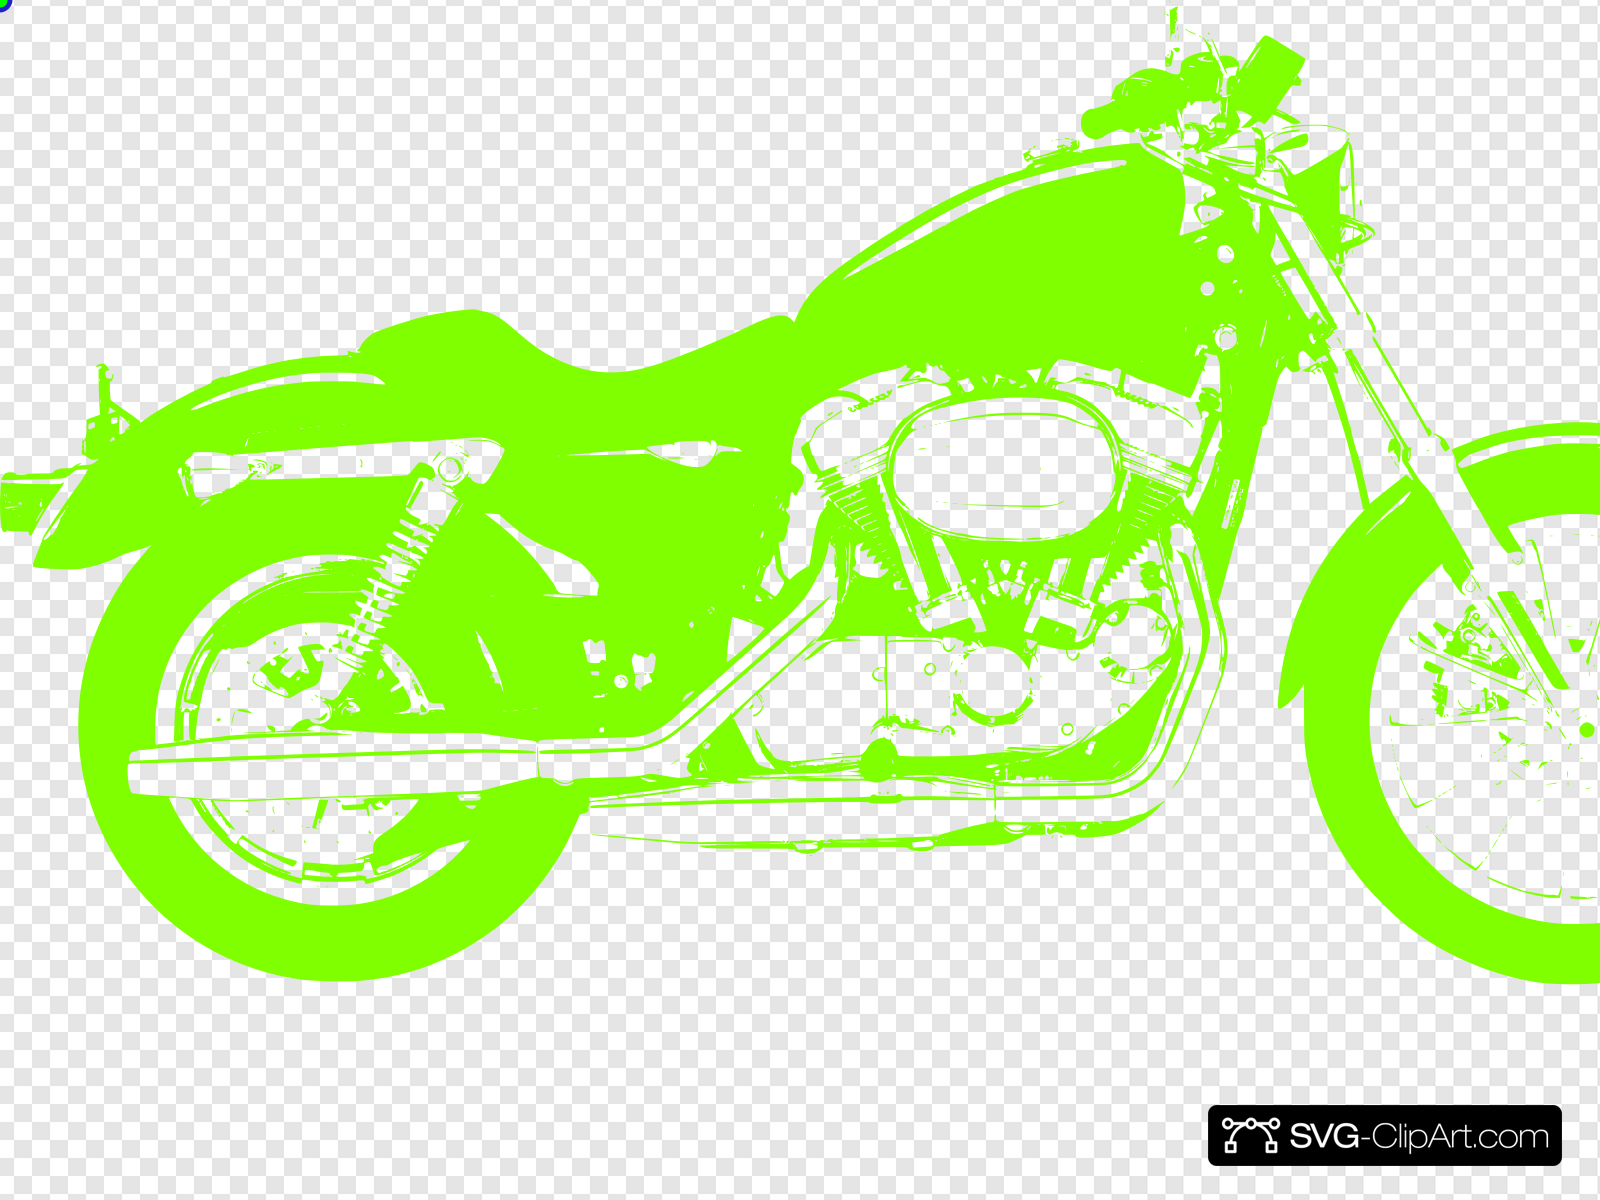 Neon clip art icon. Motorcycle clipart green motorcycle